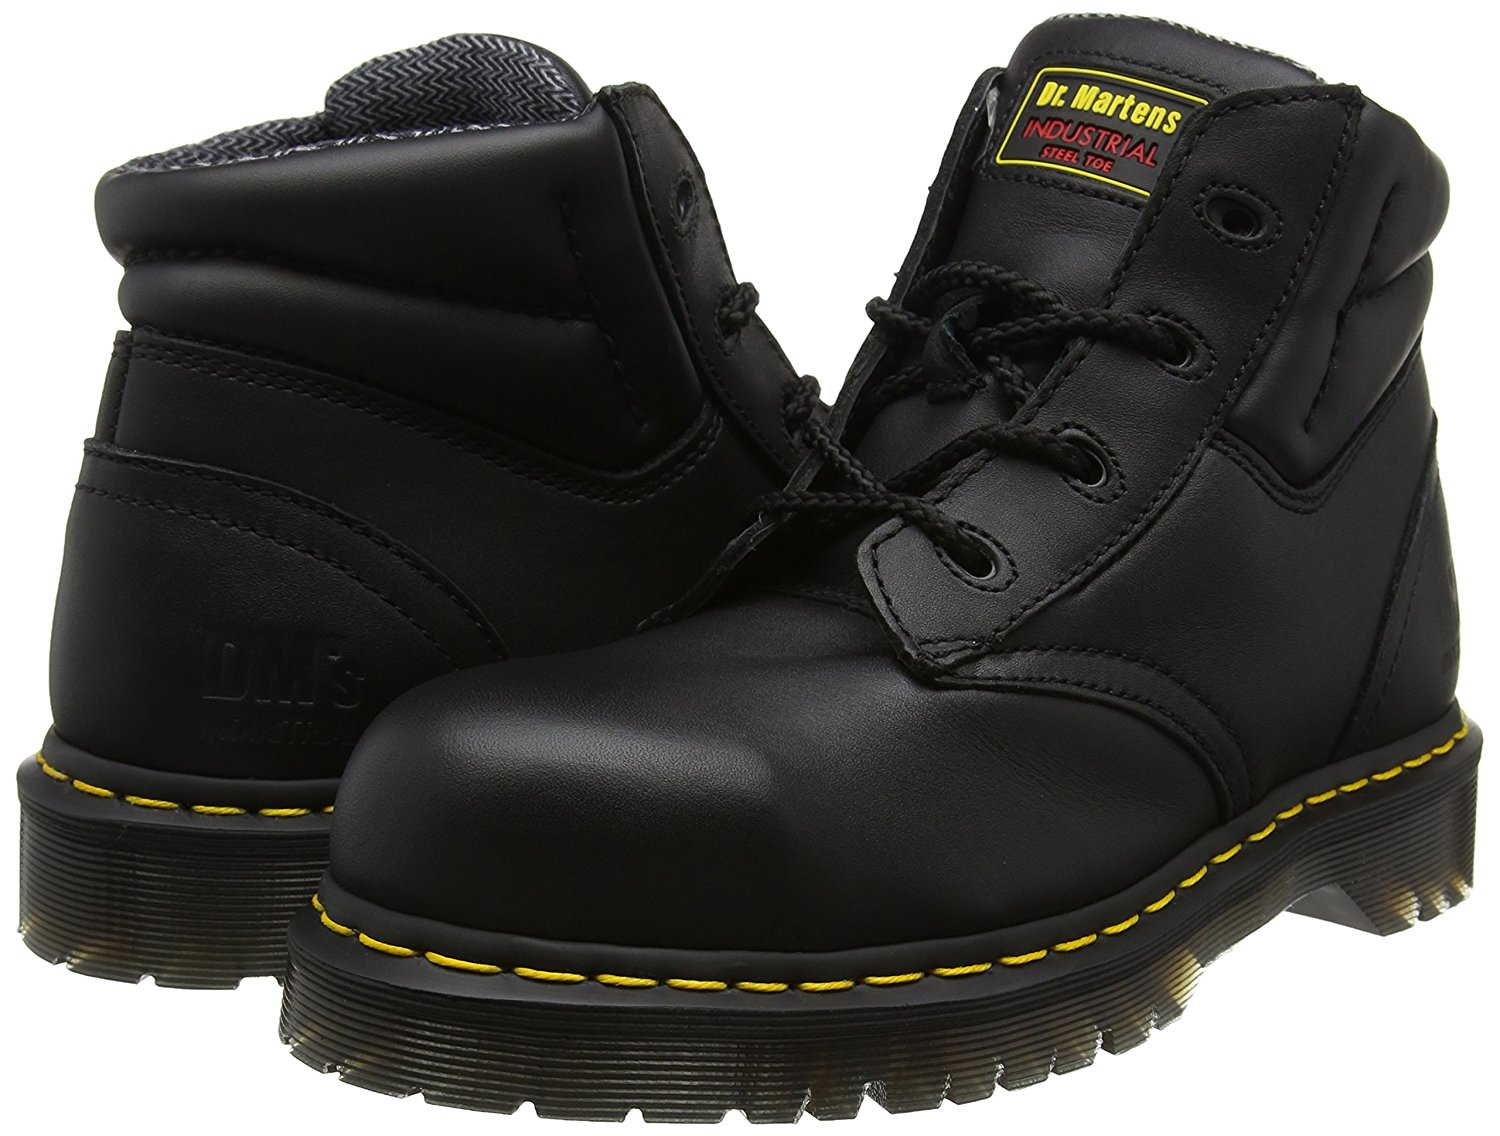 a28d8df4dea Dr Martens 6632 Icon Greasy Leather 4 Eyelet Chukka Safety Boot